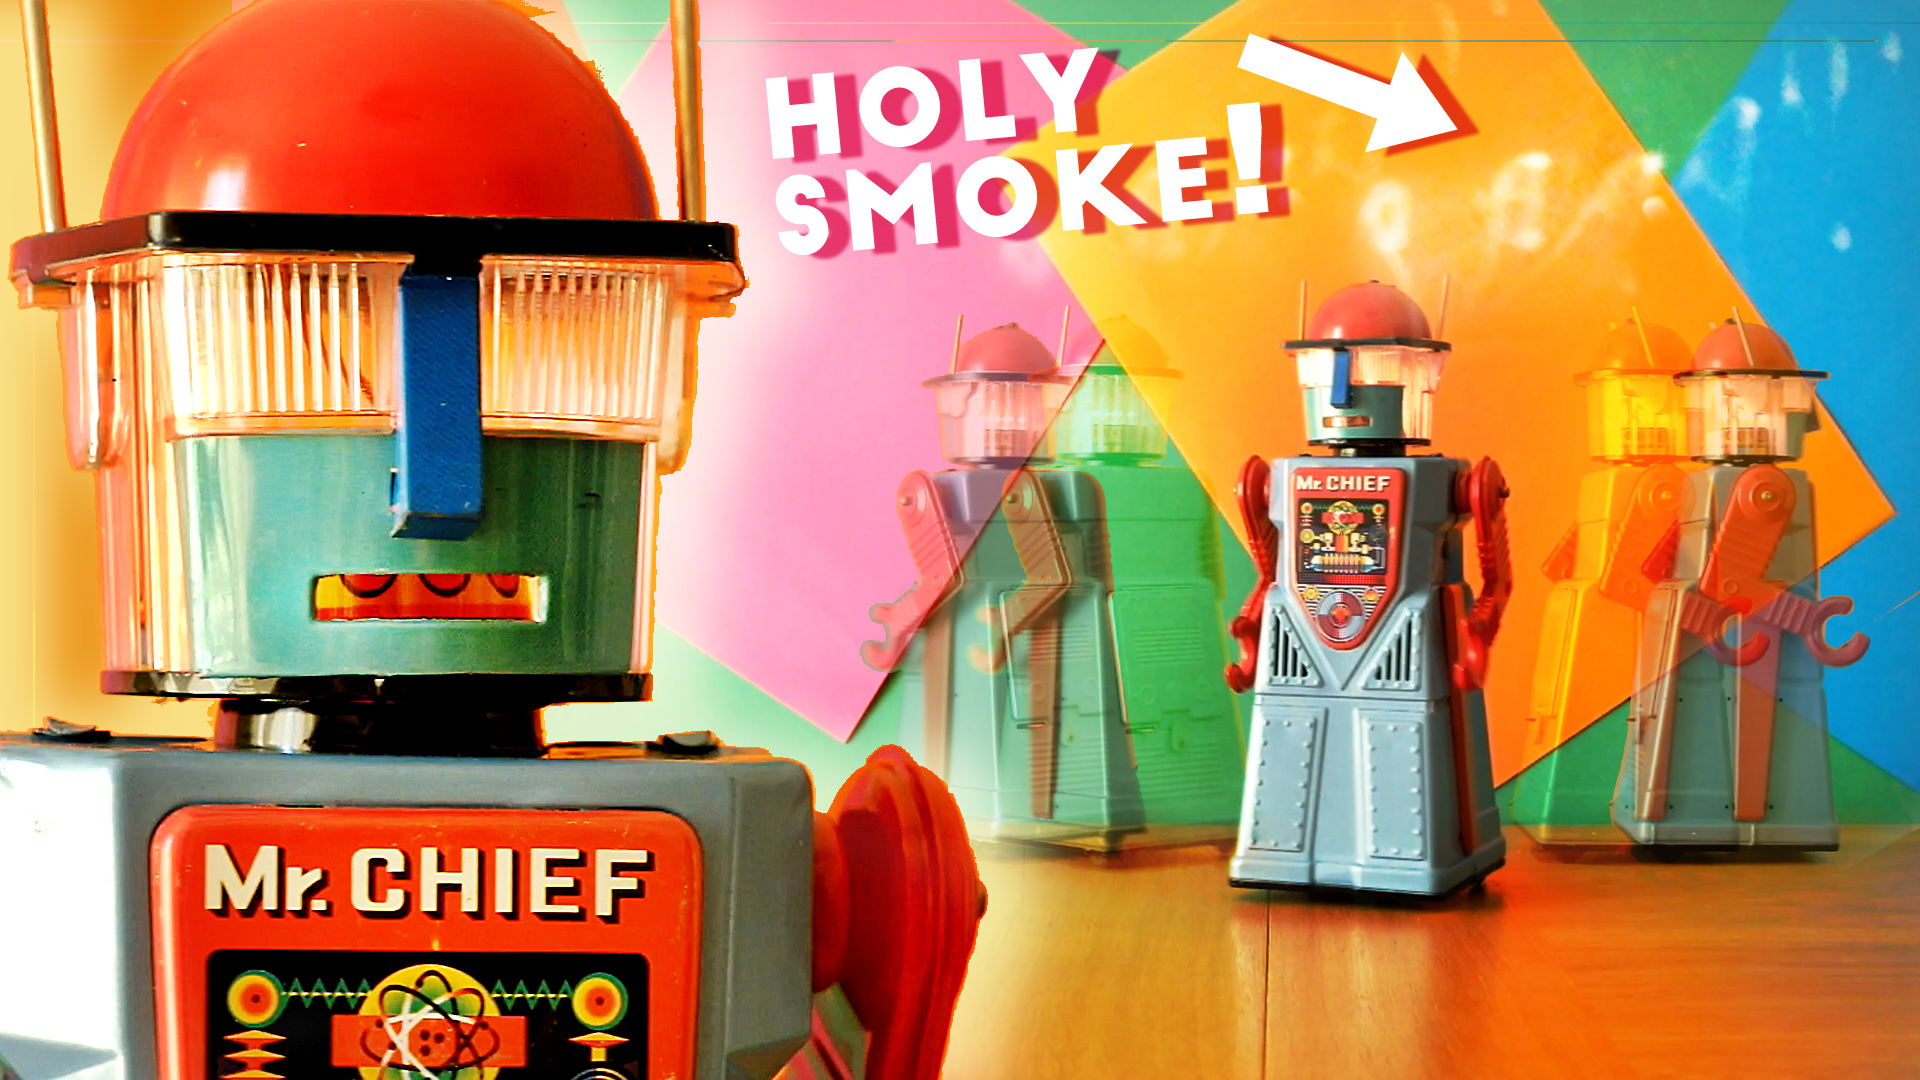 Mr Chief Smoky Toy Robot with Puffing Smoke